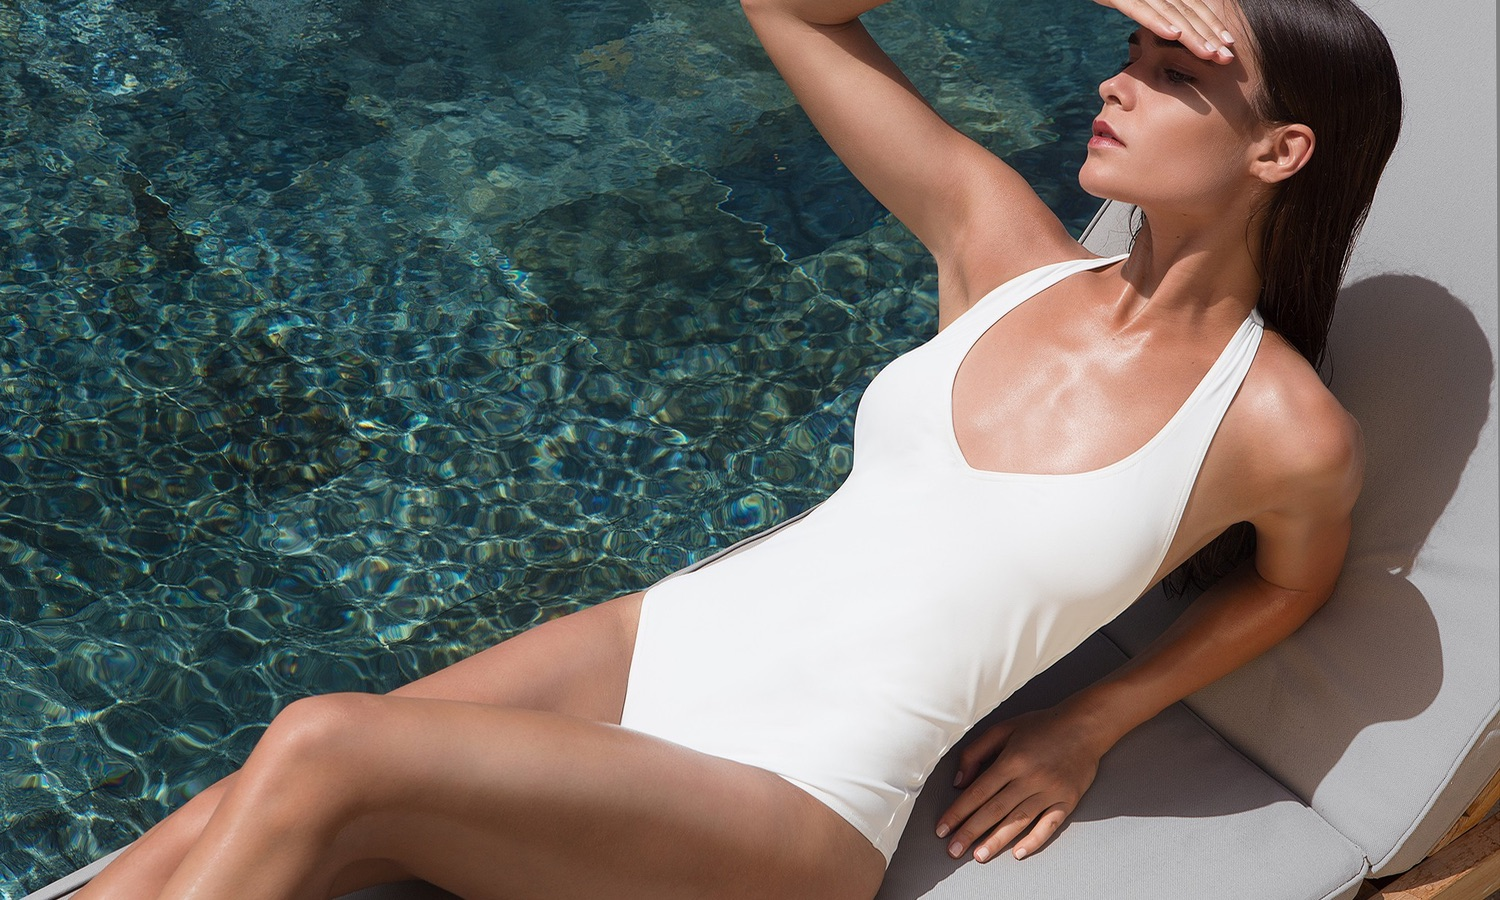 woman with a white swimsuit at the pool